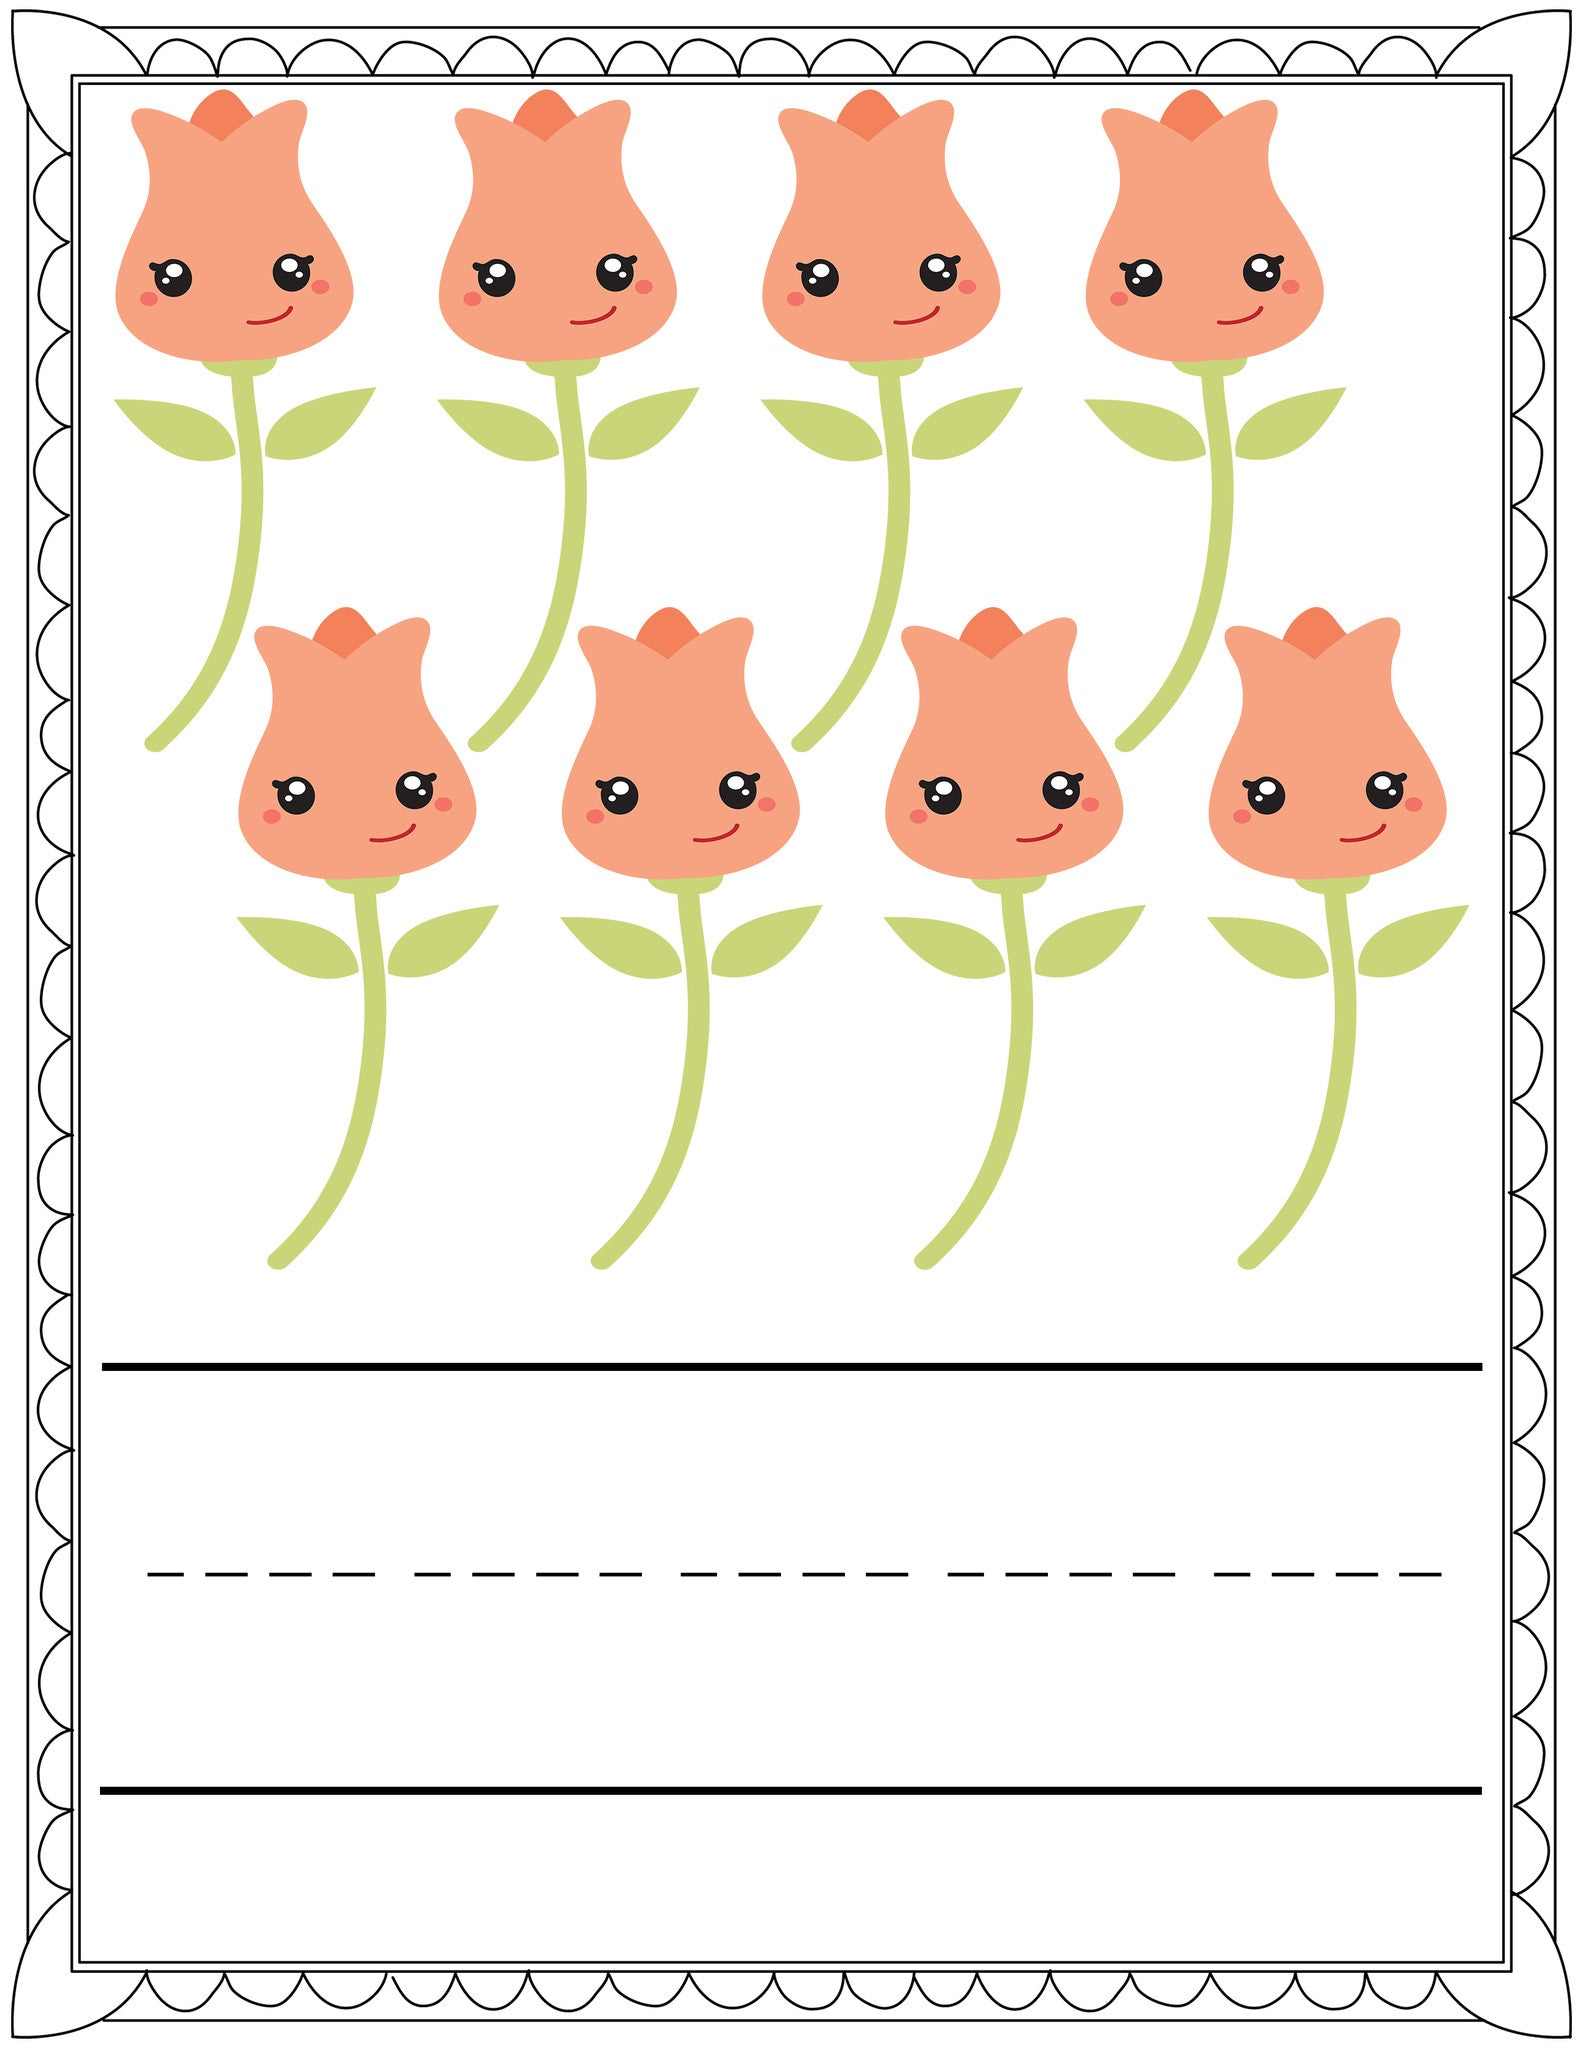 Printable counting worksheets for spring dorky doodles and if you love these you should go grab the full pack of printable worksheets from zippadee zazz dhlflorist Gallery